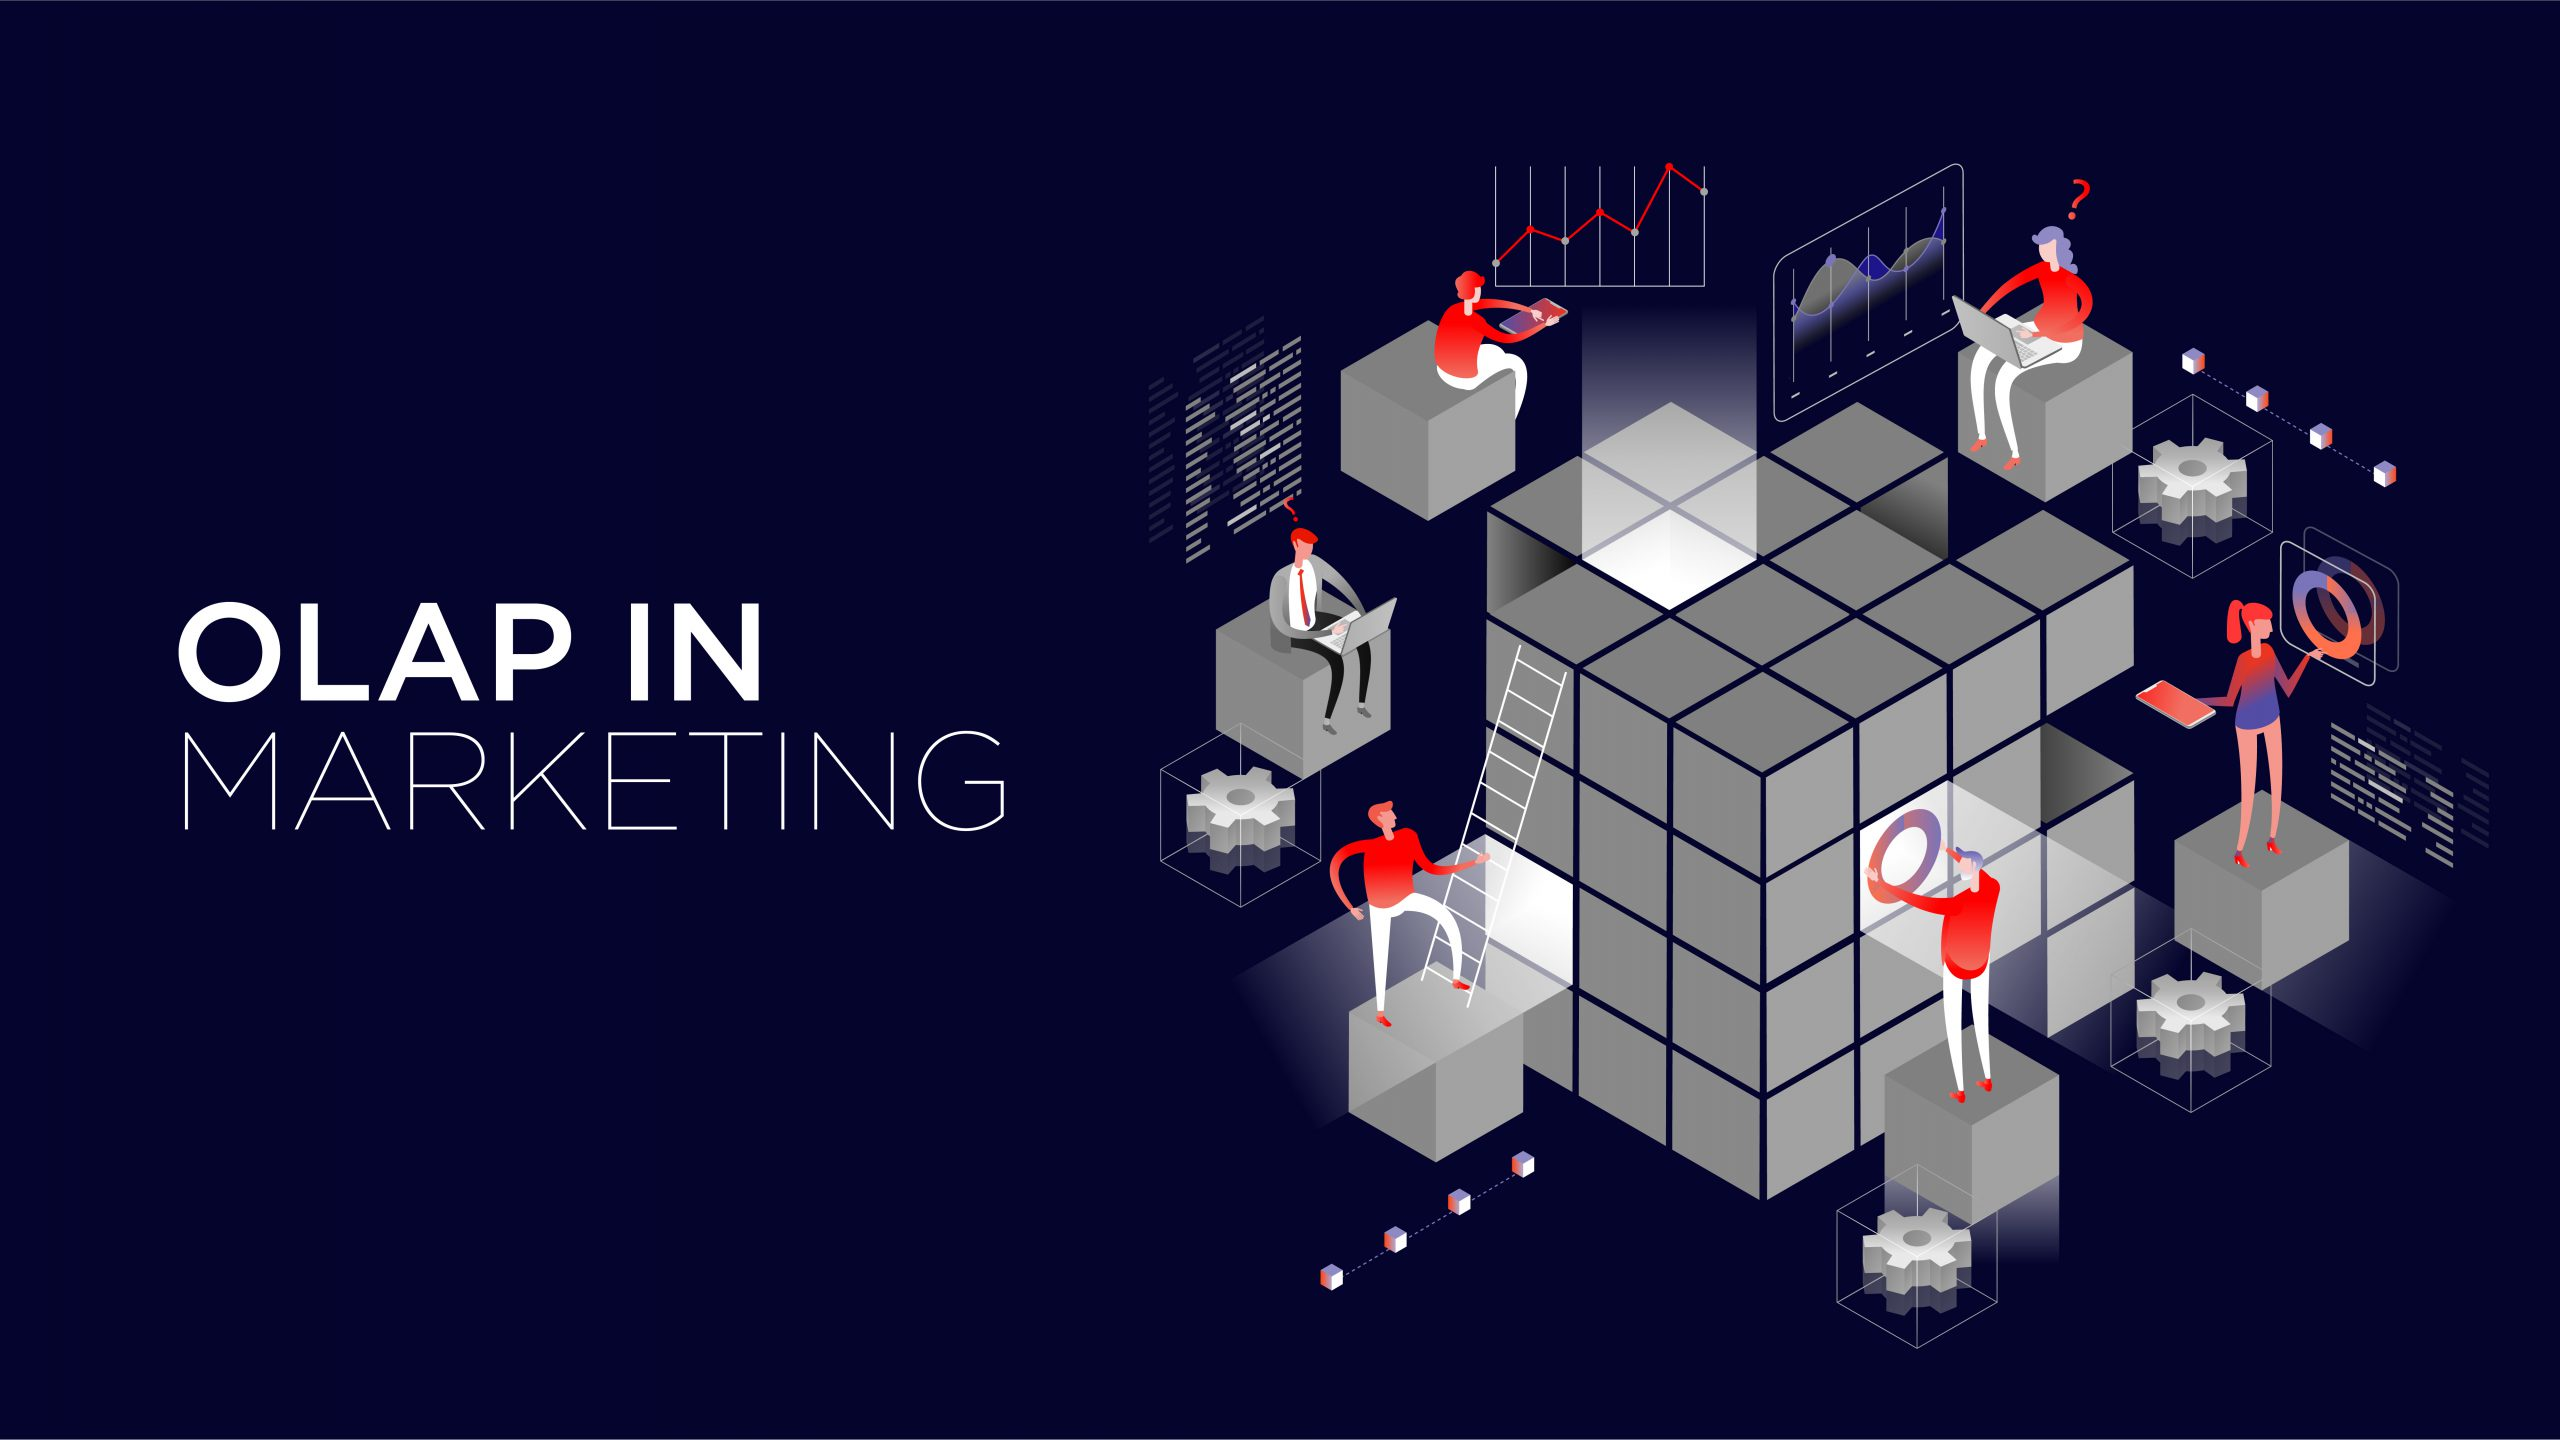 Graphic of OLAP in marketing